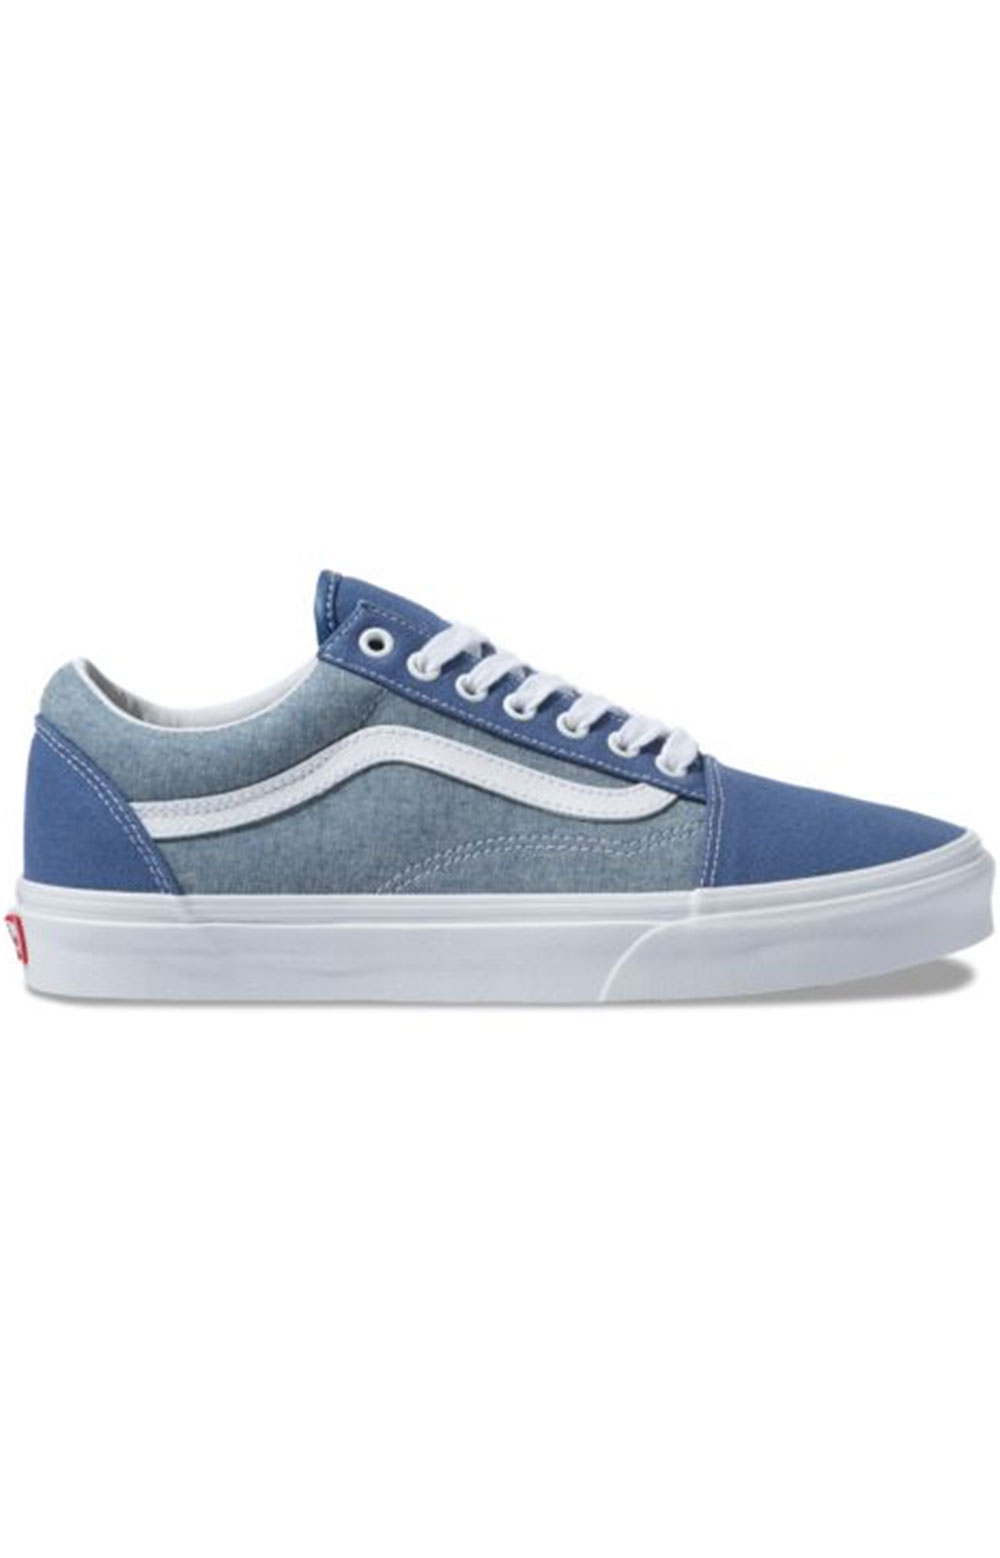 (8G1VIO) Chambray Old Skool Shoe - Canvas True Navy